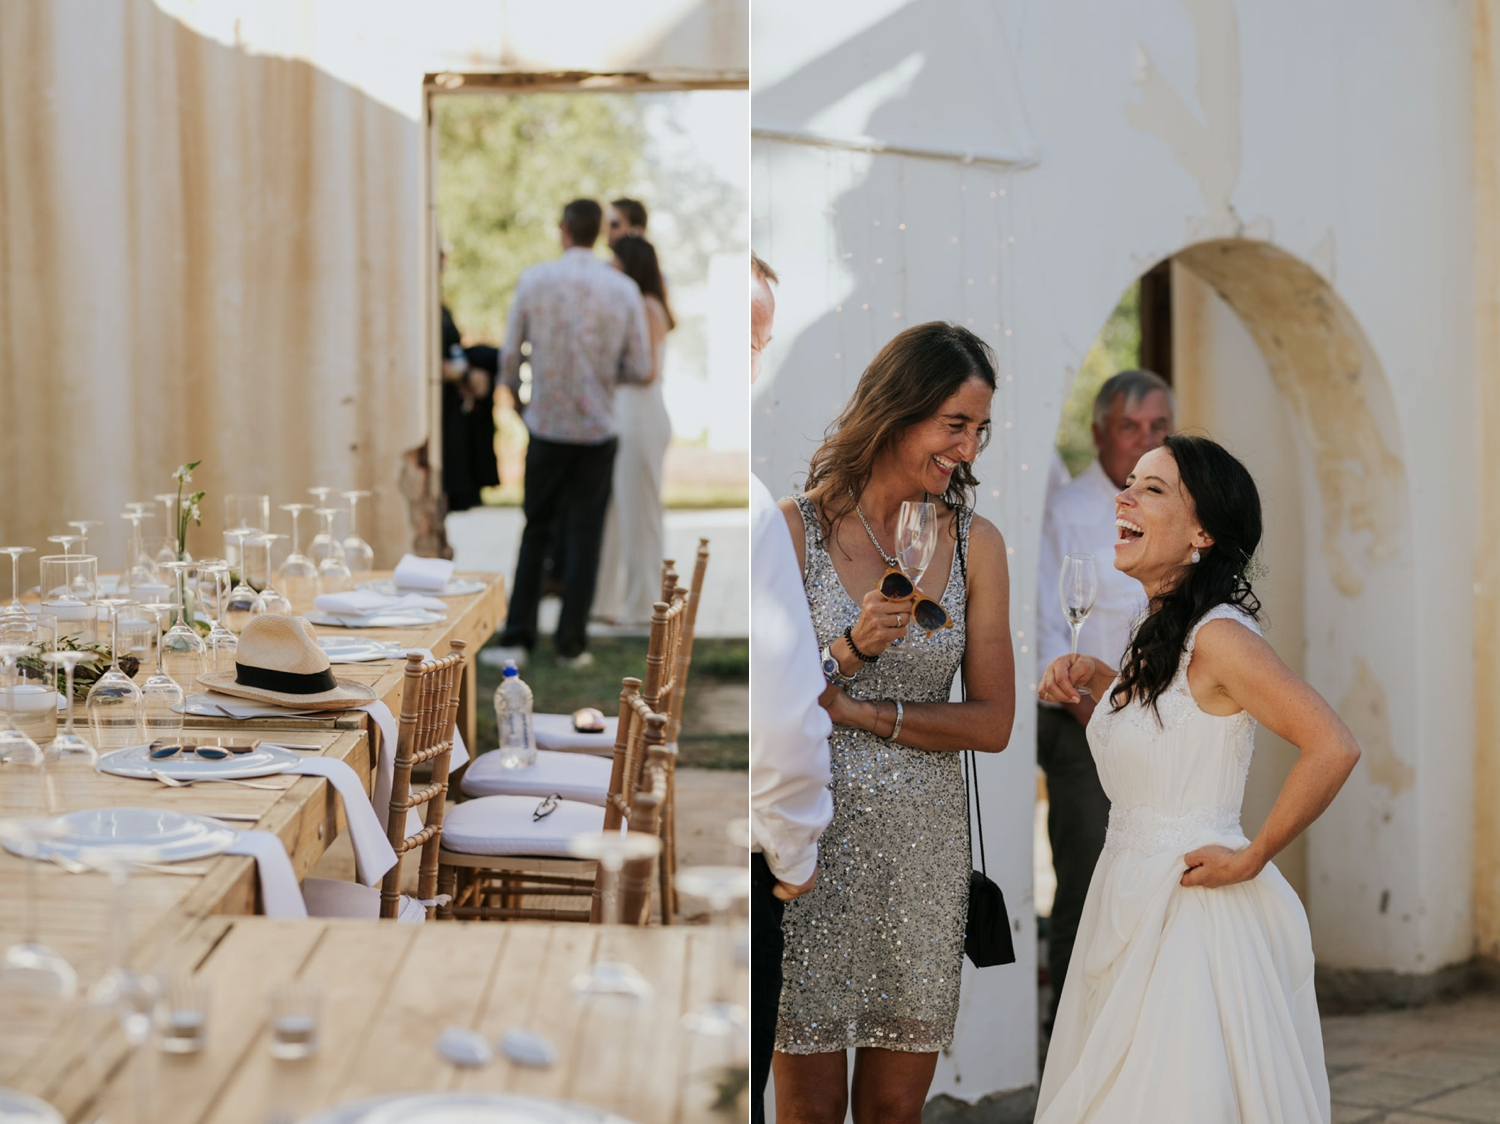 A fun and relaxed wedding lunch held in Cape Town, South Africa.